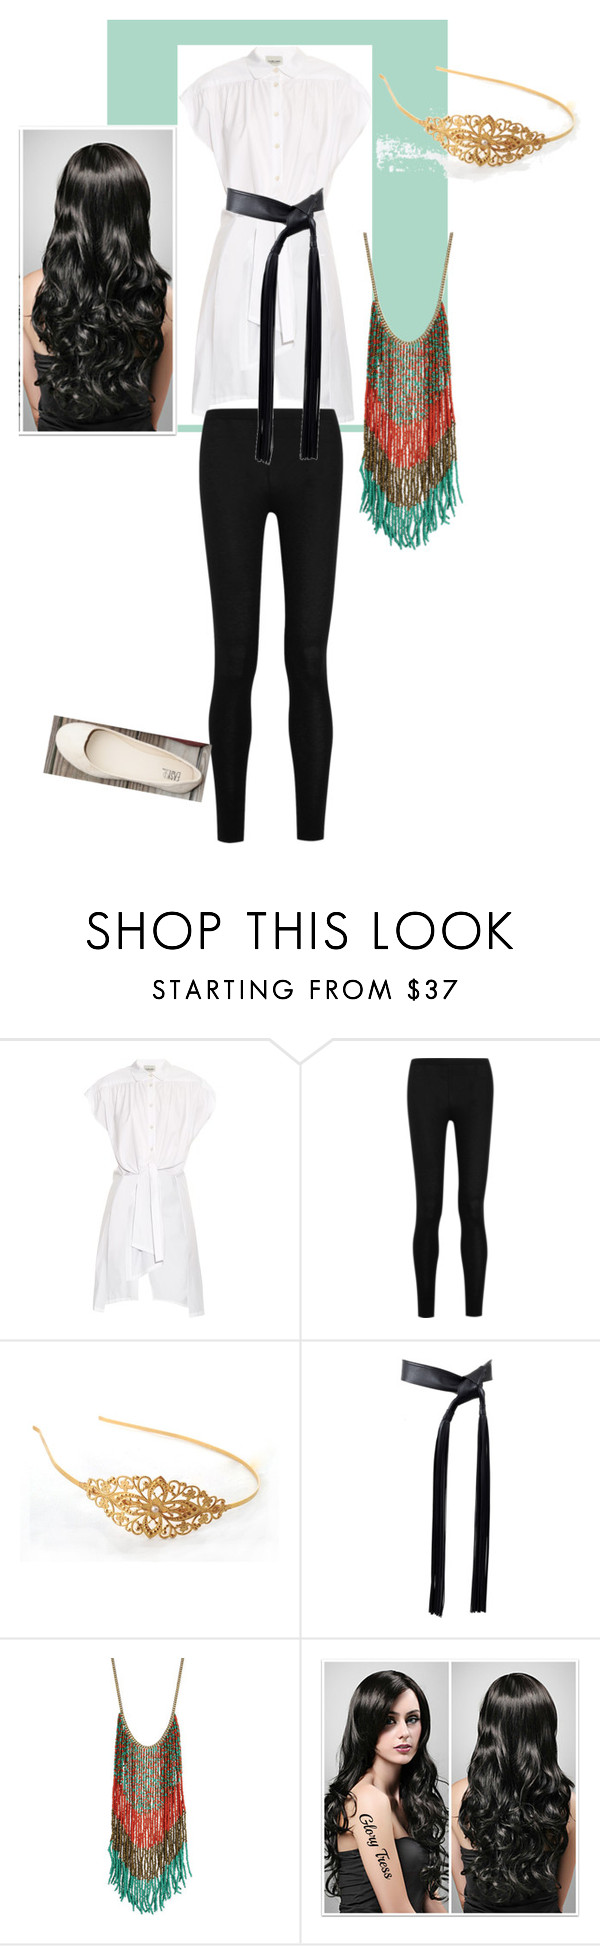 """""""D2 Bride (Chive)"""" by sweetieme-1 ❤ liked on Polyvore featuring Rachel Comey, Donna Karan and Michael Kors"""